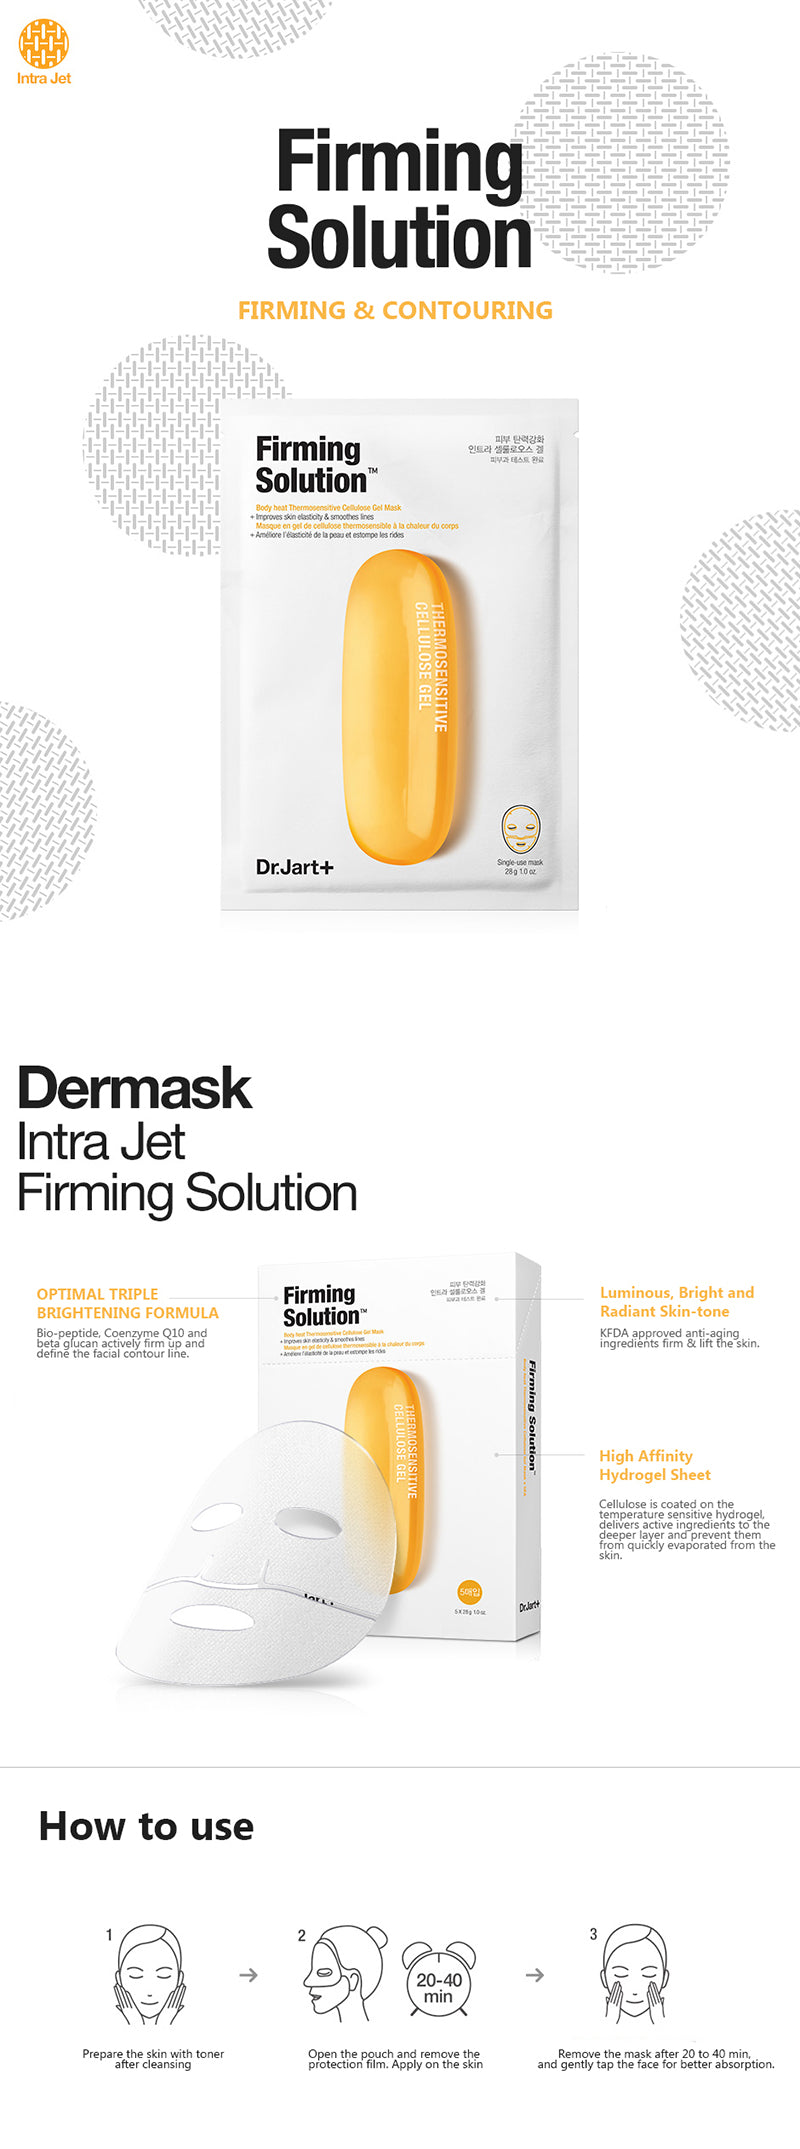 dermask_fiming_solution.jpg